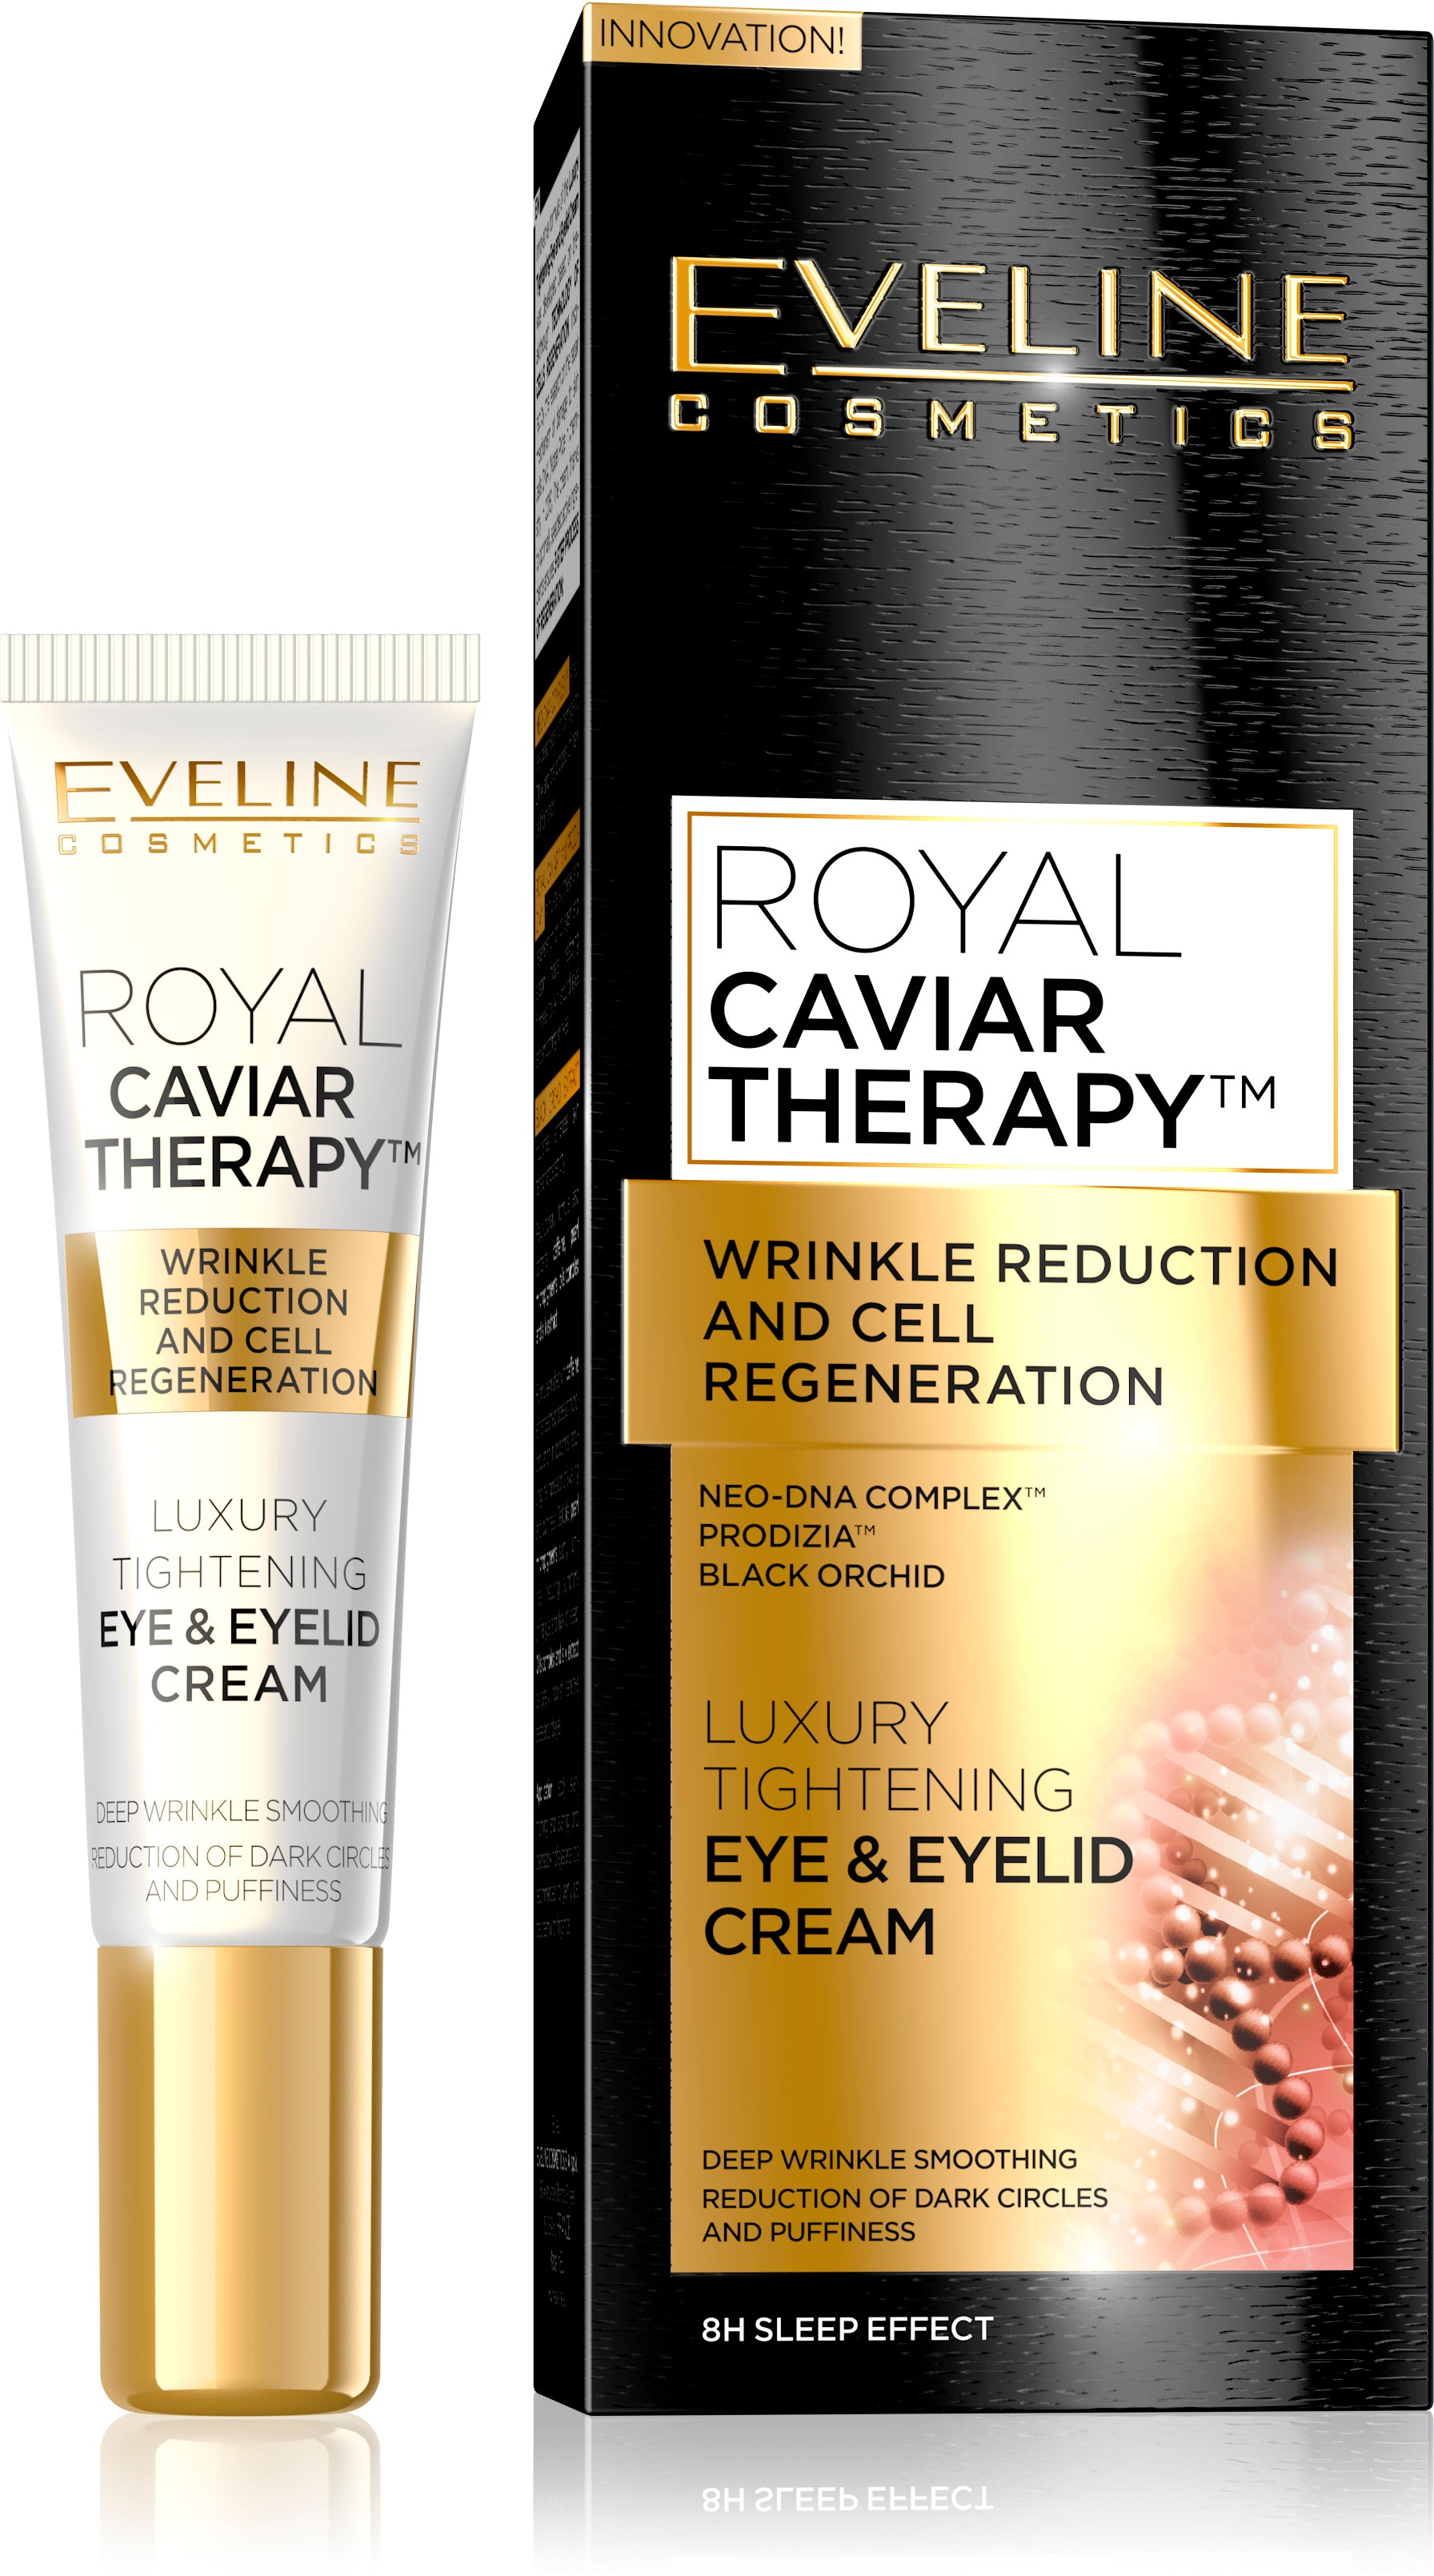 Eveline Royal Caviar Anti Wrinkle Firming Eye Cream SPF10 15ml eveline-cosmetics.myshopify.com